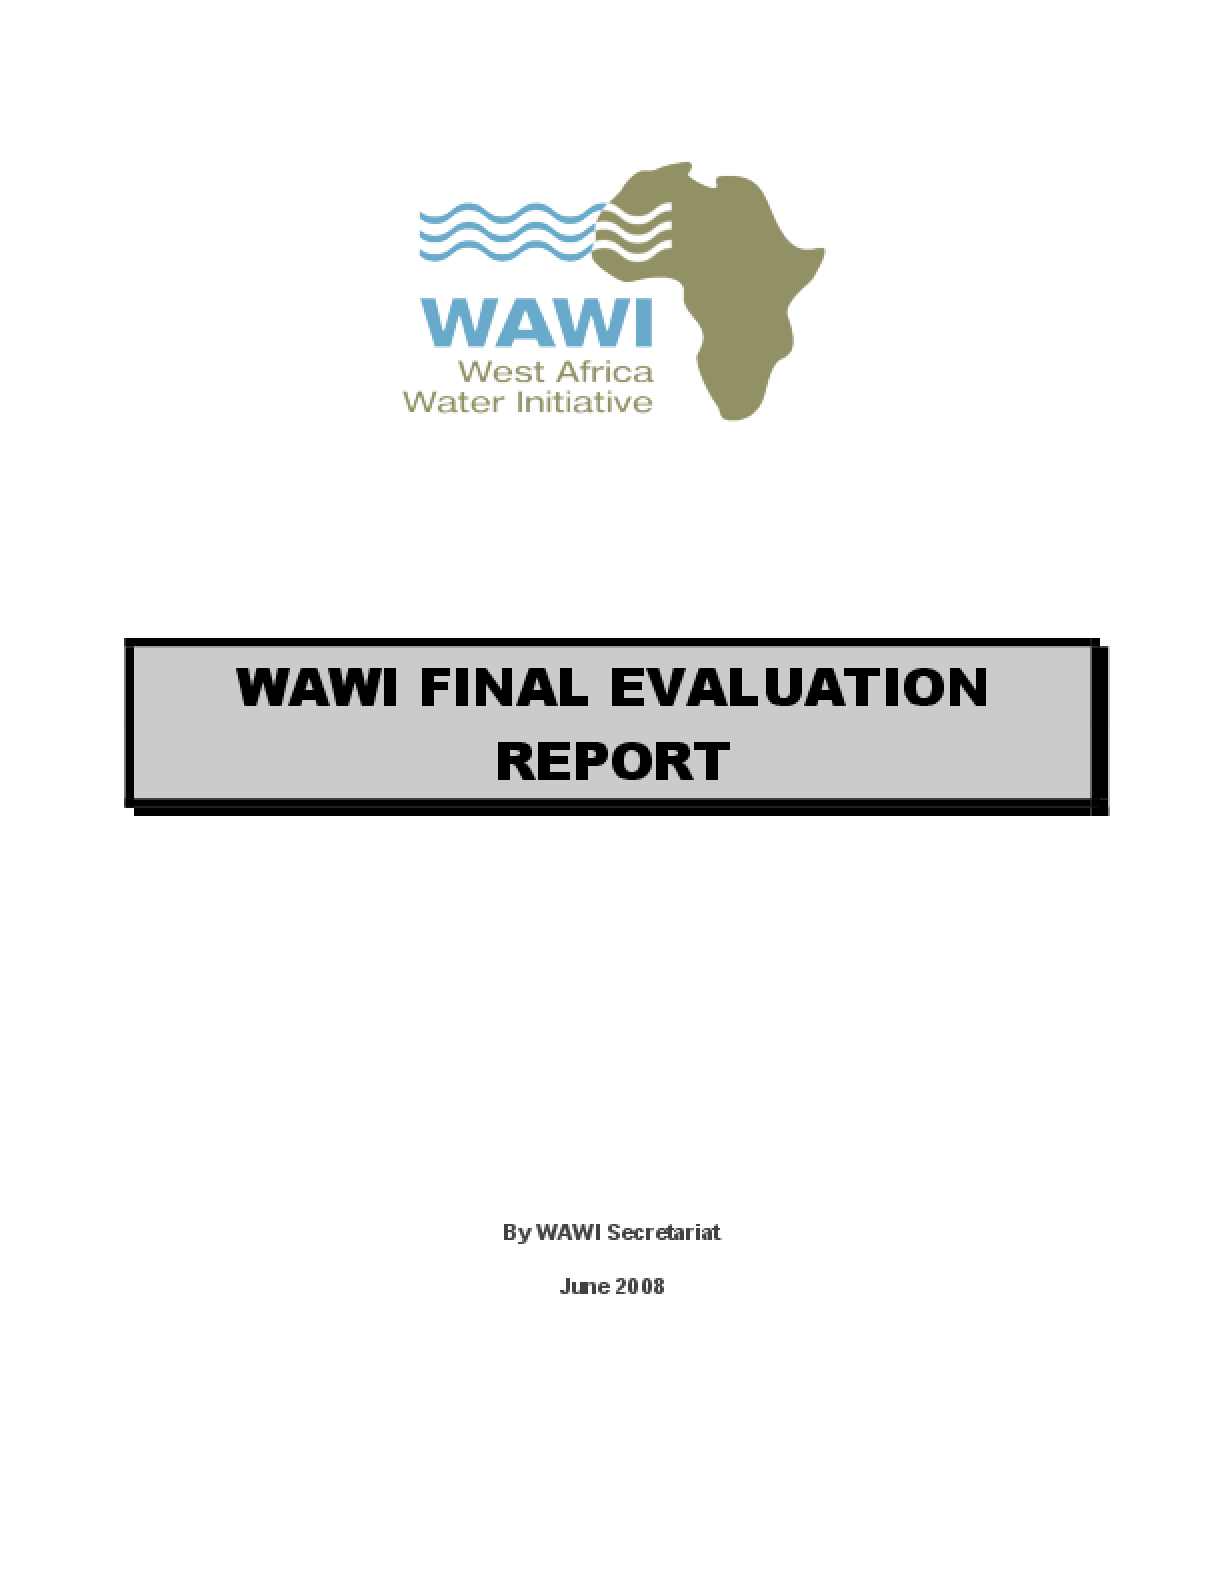 West Africa Water Initiative Phase I Final Evaluation Report